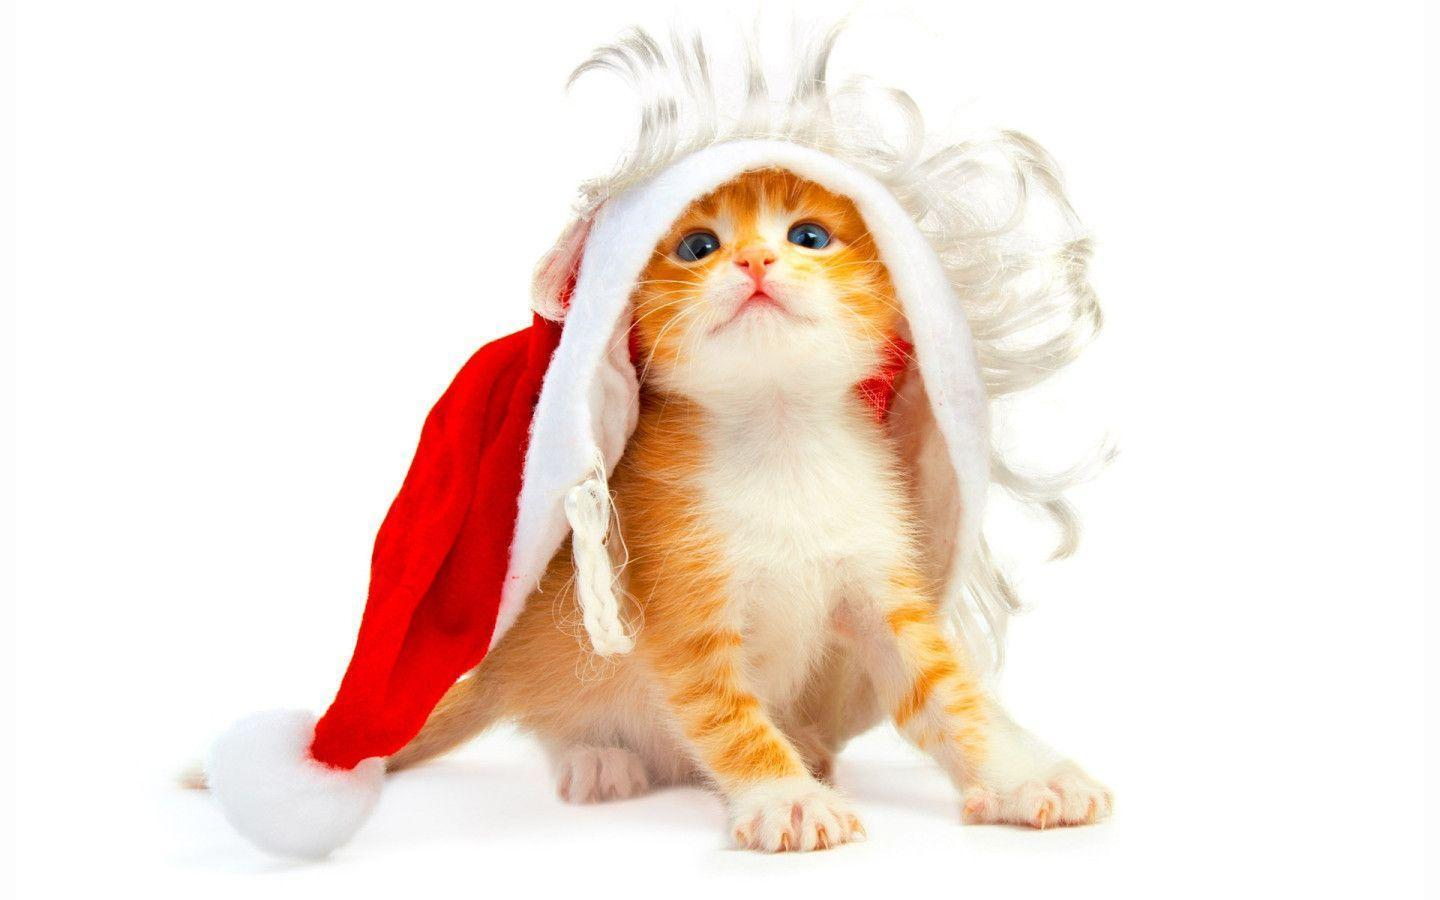 Xmas Stuff For > Cute Christmas Kitten Wallpaper